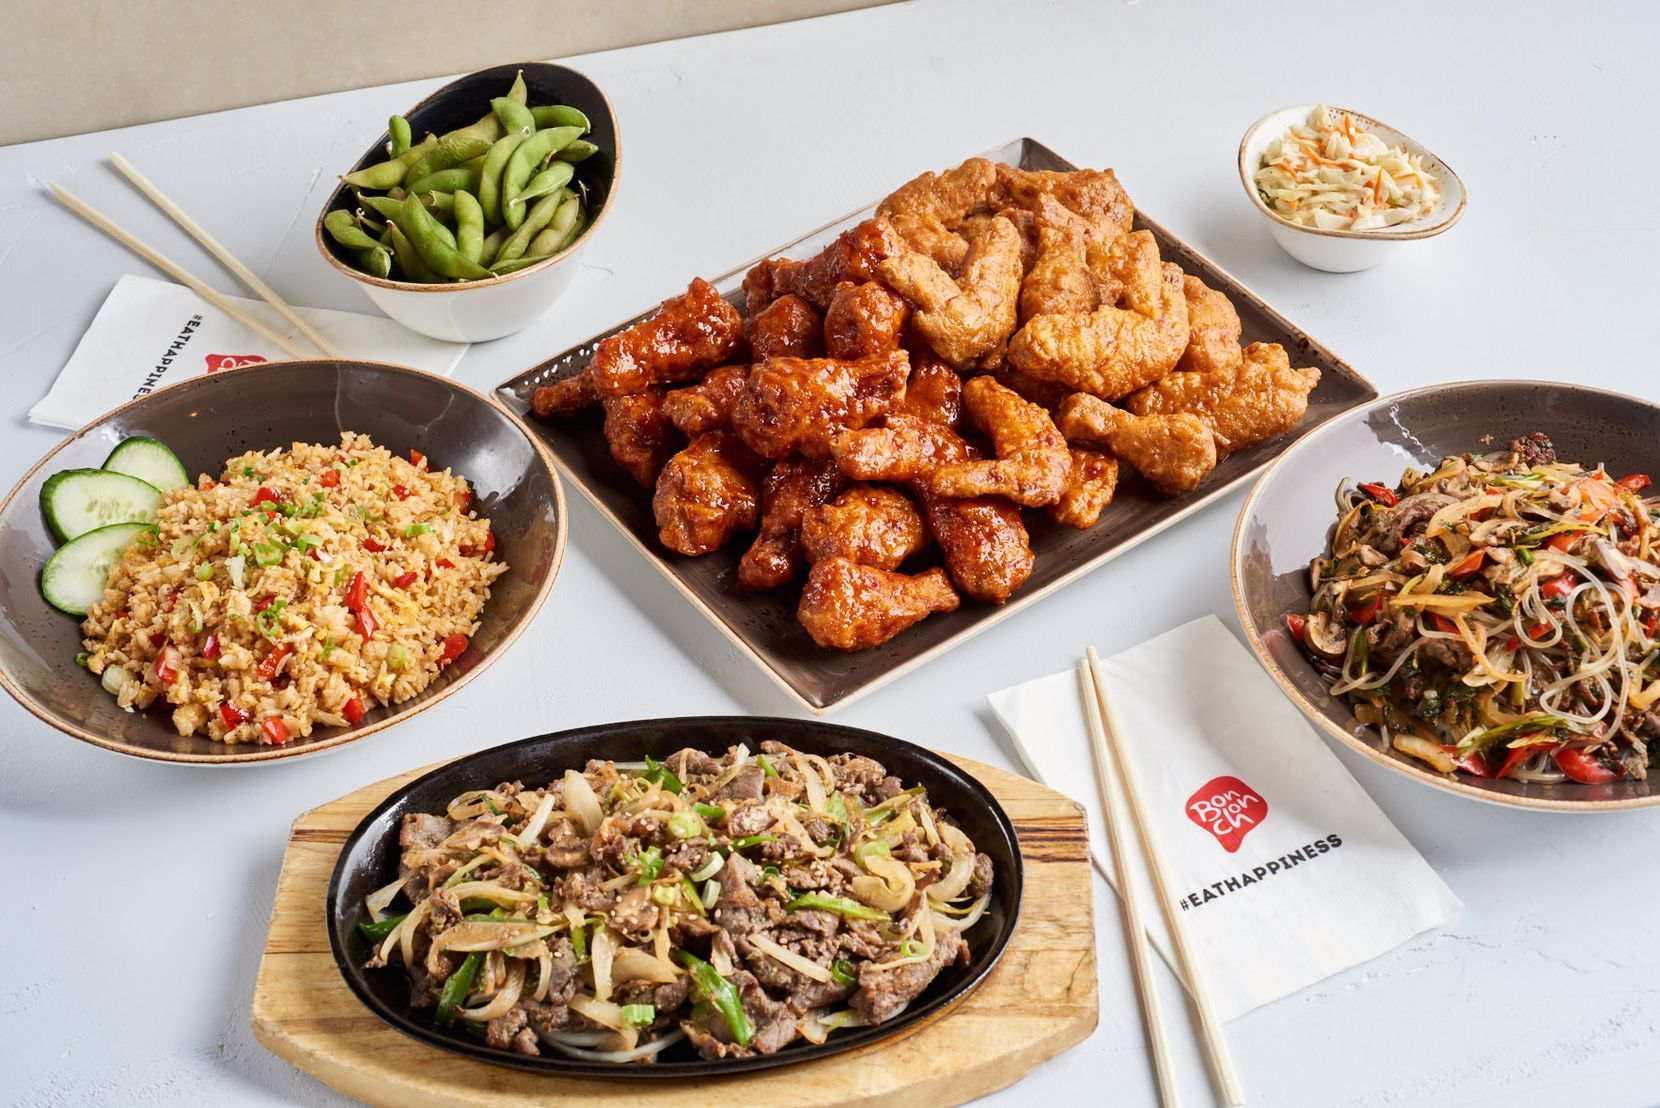 Beyond chicken wings, Bonchon sells other Korean dishes.